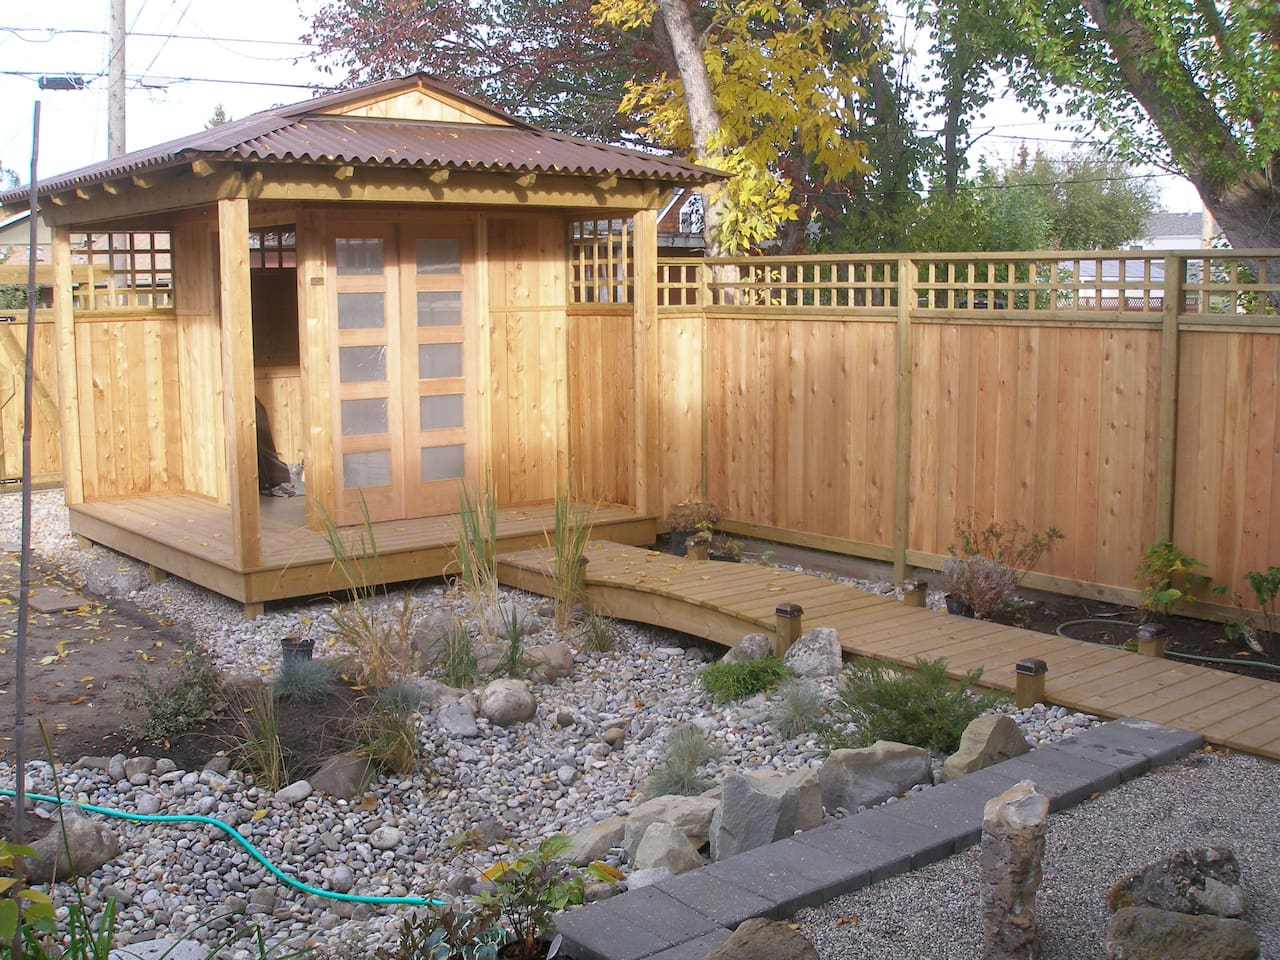 I have built a Japanese style tea house and meditation garden this past summer for guests to enjoy.